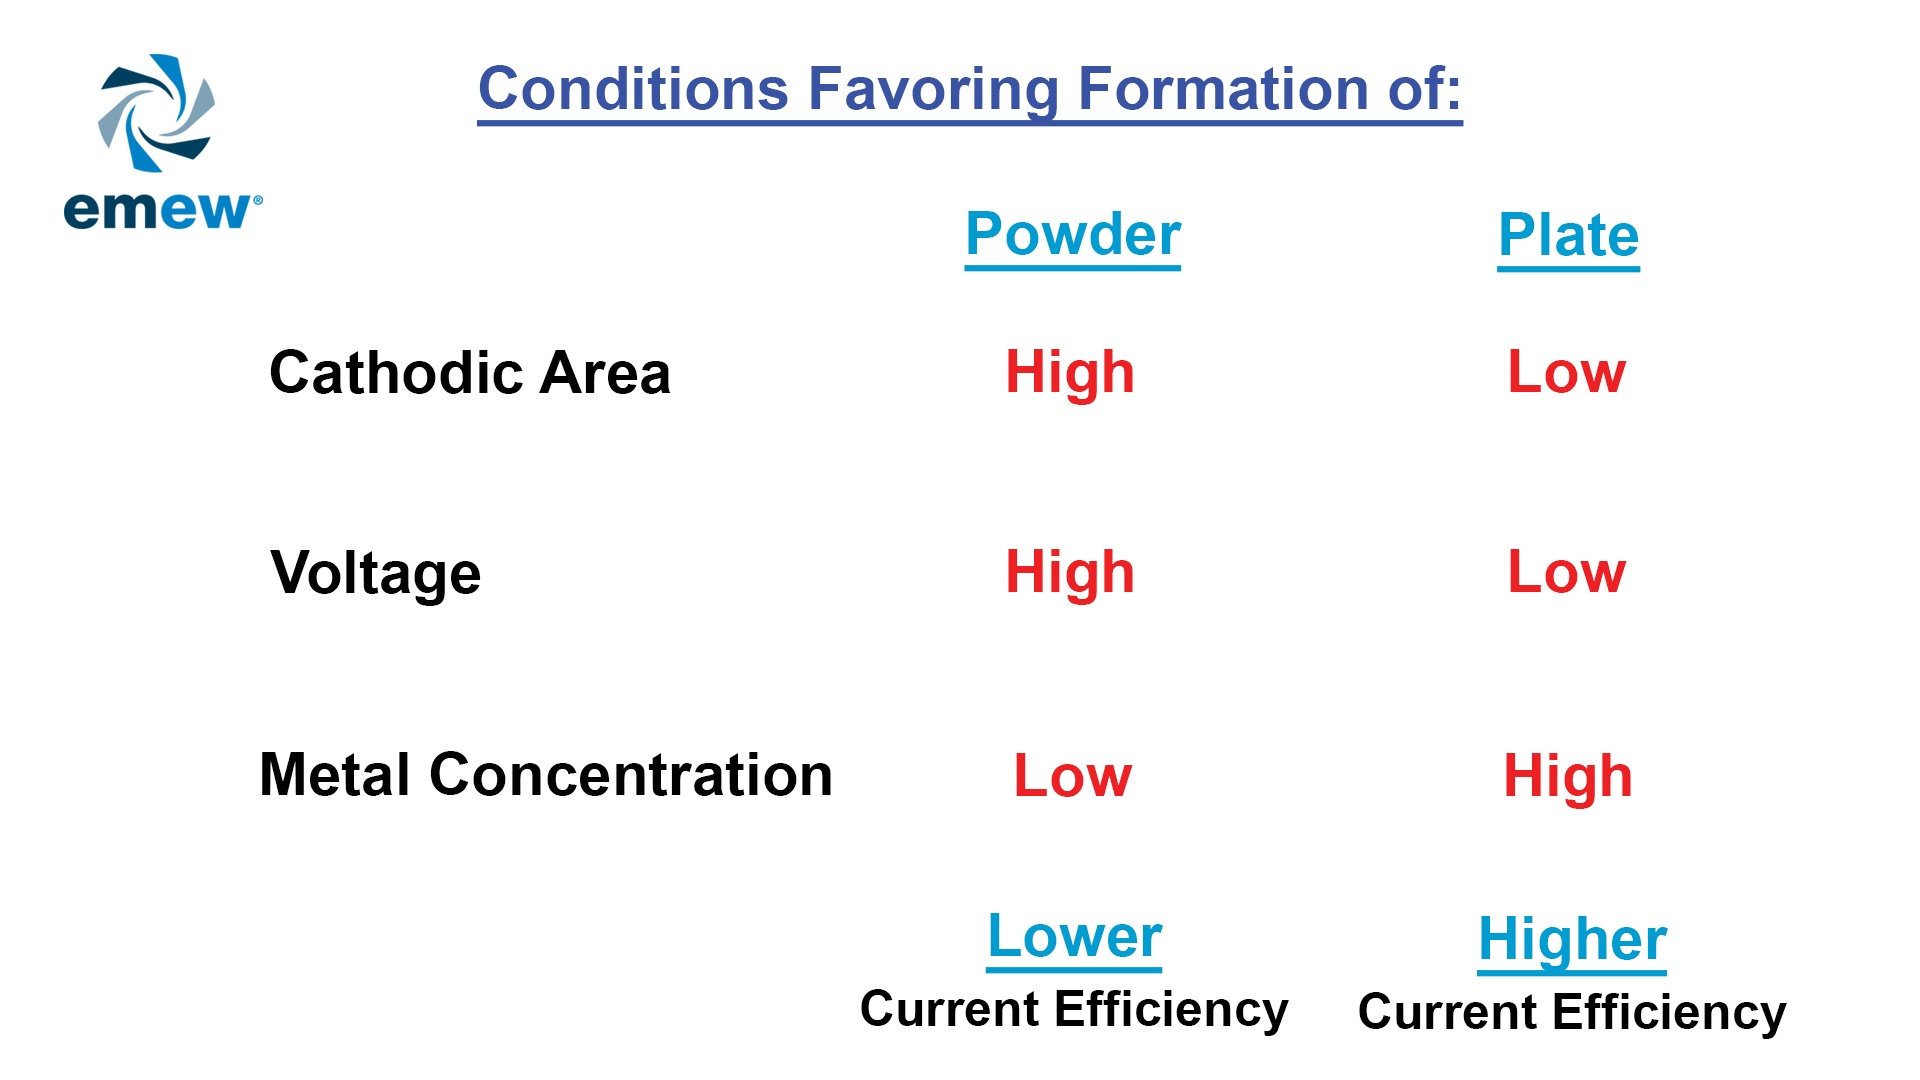 electrowinning conditions favoring formation